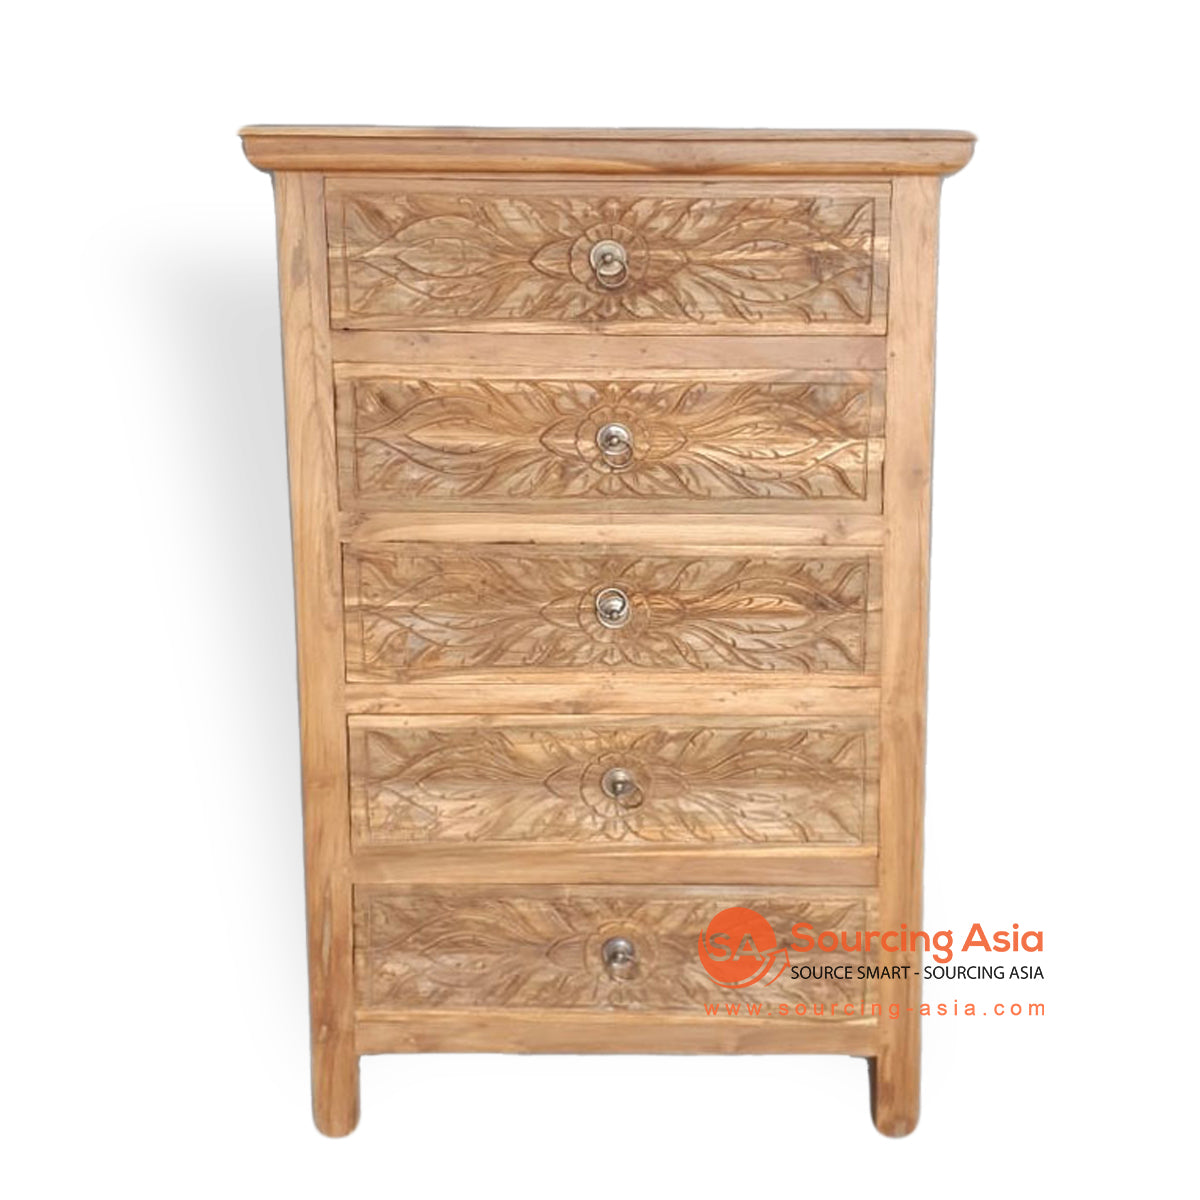 LAC059-1 CARVED 5 DRAWER CHEST OF DRAWERS